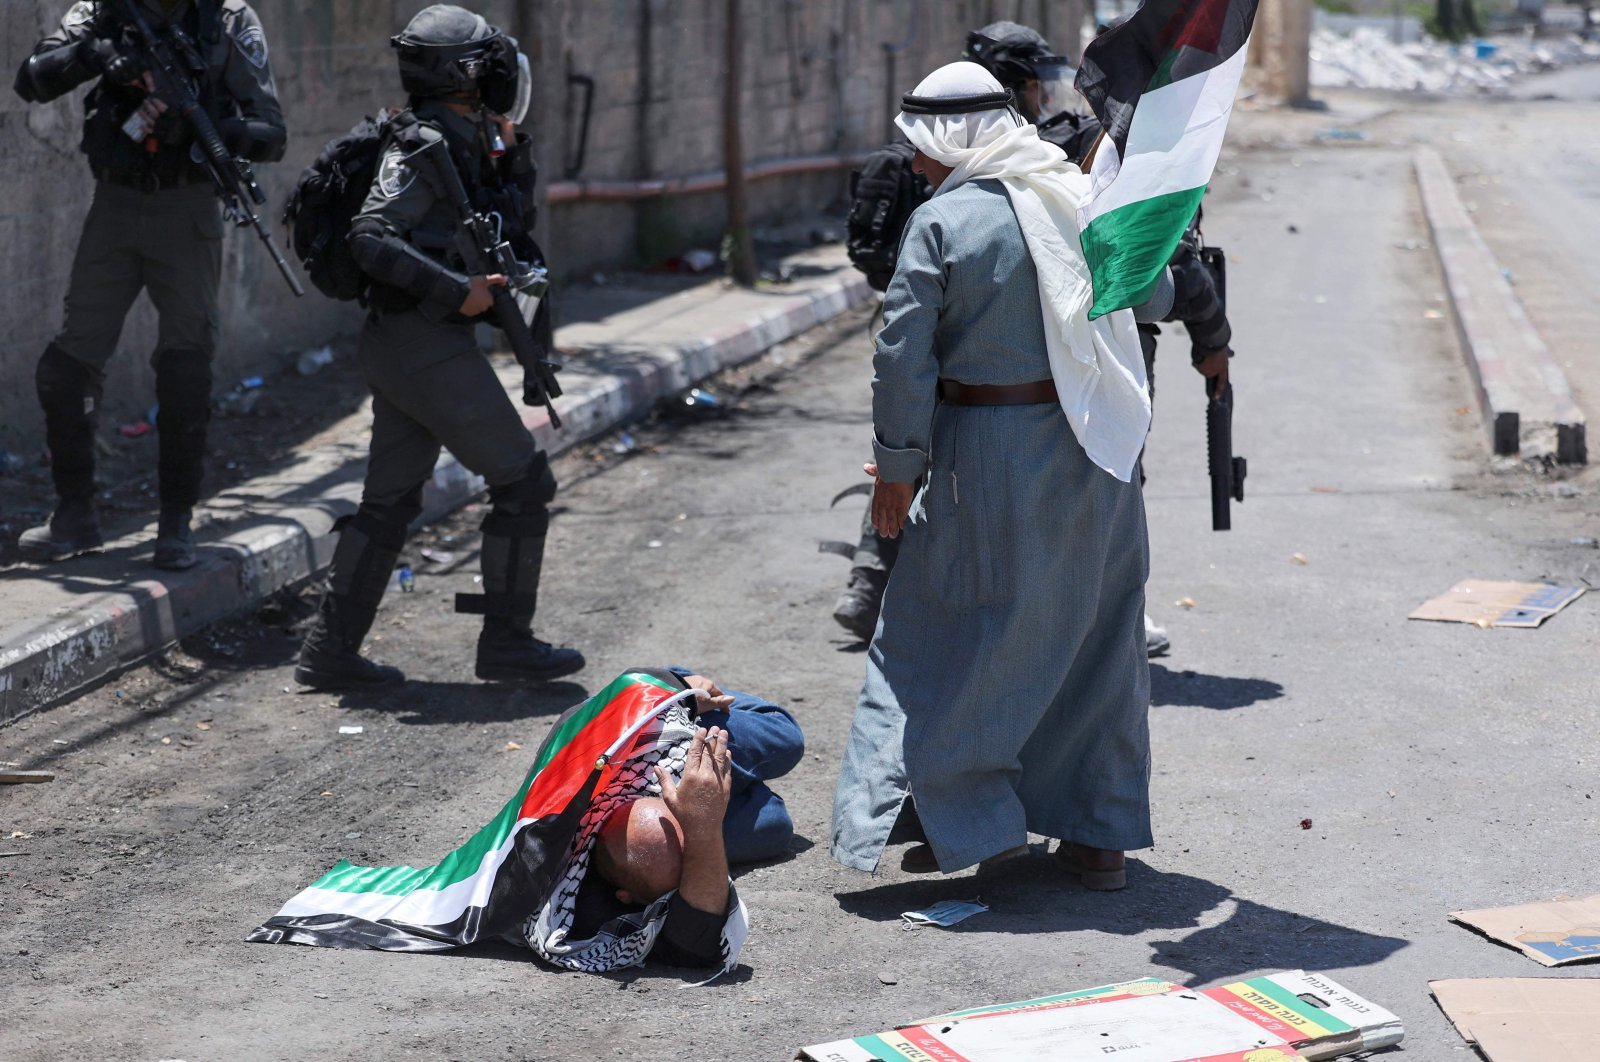 A Palestinian protester lies on the ground after being pushed by Israeli security forces amid clashes following a demonstration against Israeli settlements in the village of Beita, south of Nablus in the occupied West Bank, Palestine, June 18, 2021. (AFP Photo)